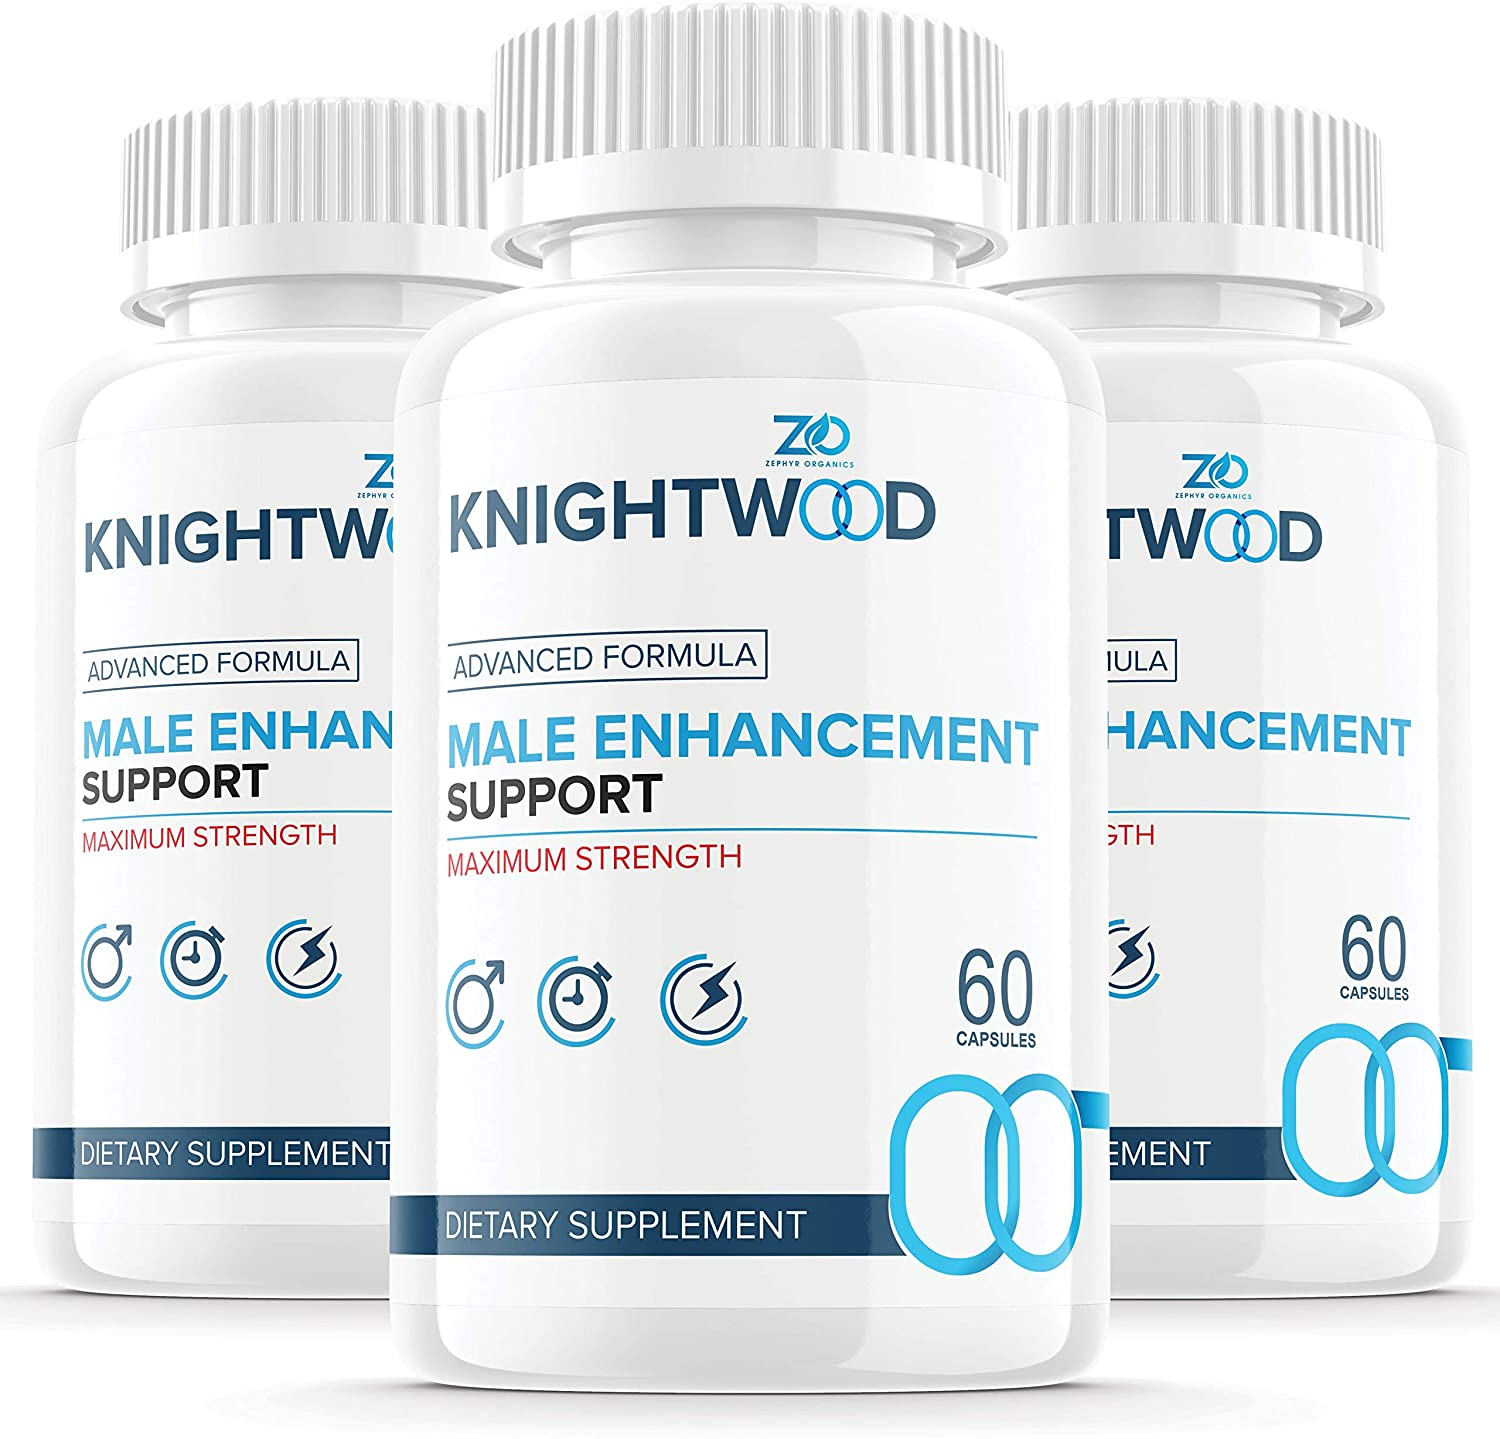 Knightwood Ingredients Label - Knightwood Male Enhancement Pills Ingredients